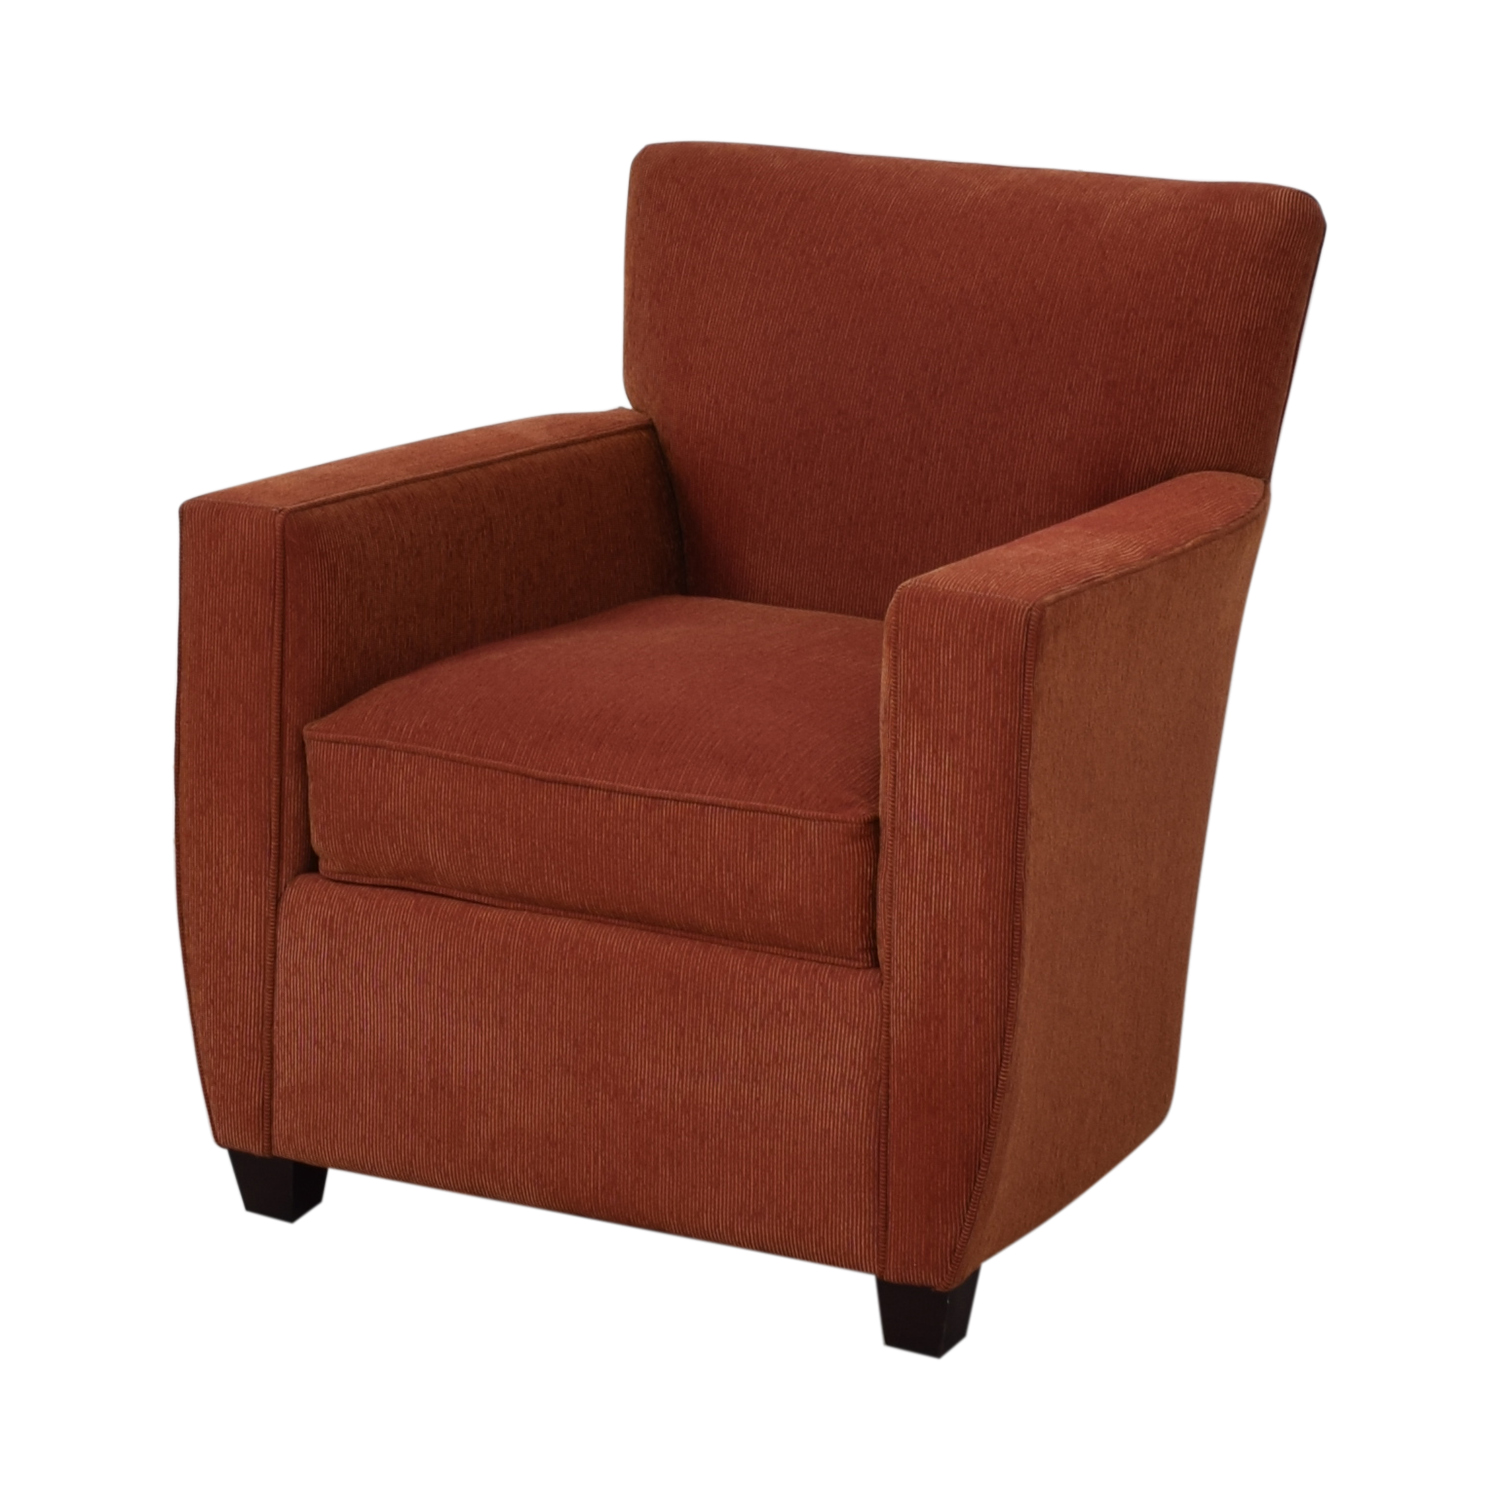 Crate & Barrel Crate & Barrel Chili Red Accent Chair nyc